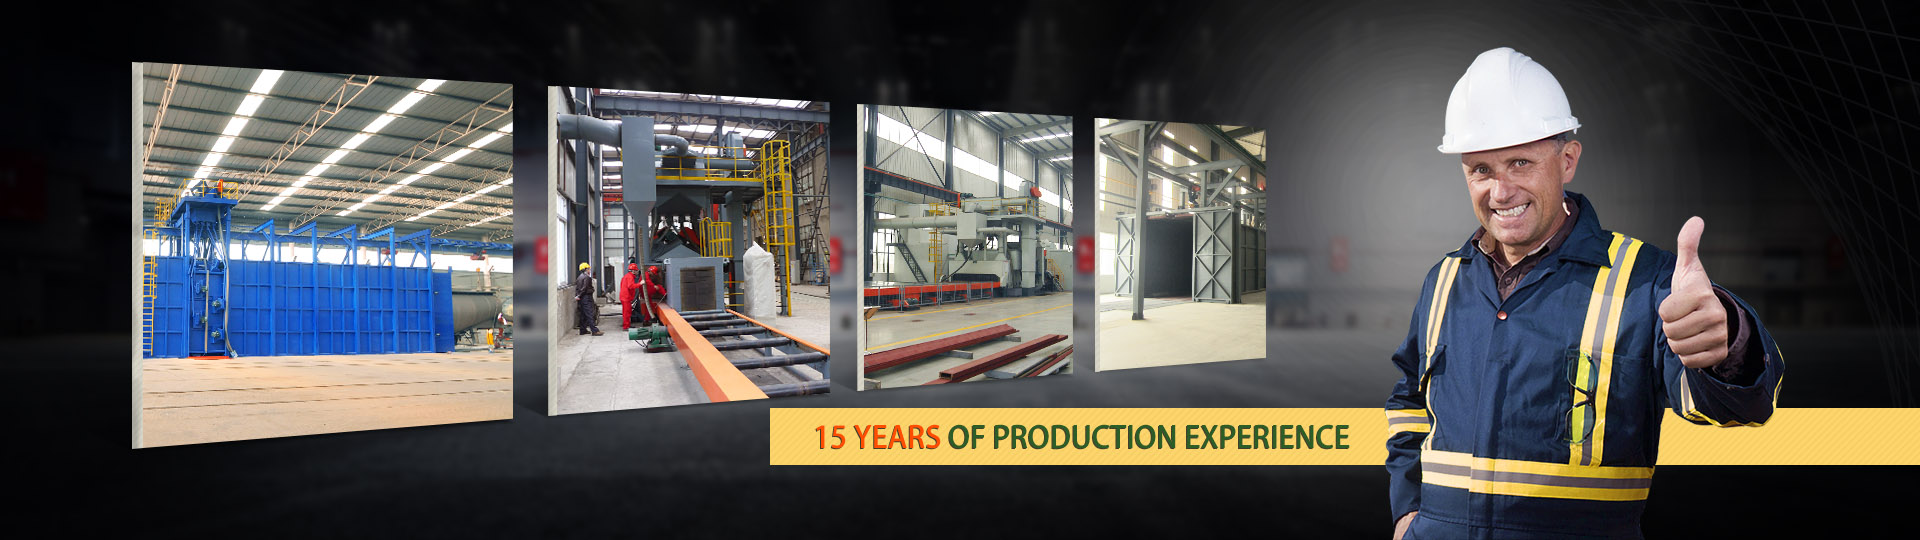 15 years of production experience